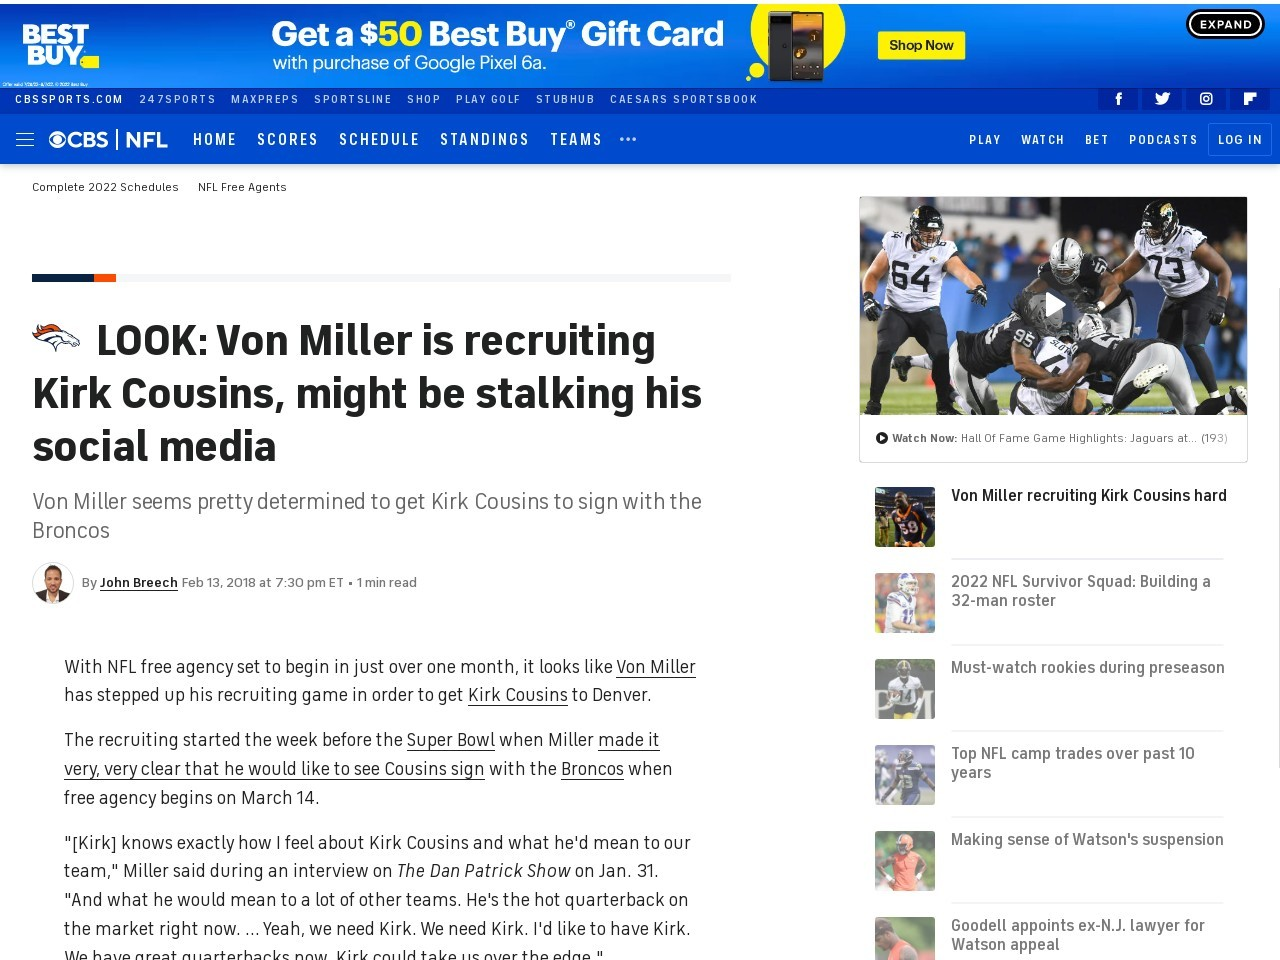 LOOK: Von Miller is recruiting Kirk Cousins, might be stalking his social media